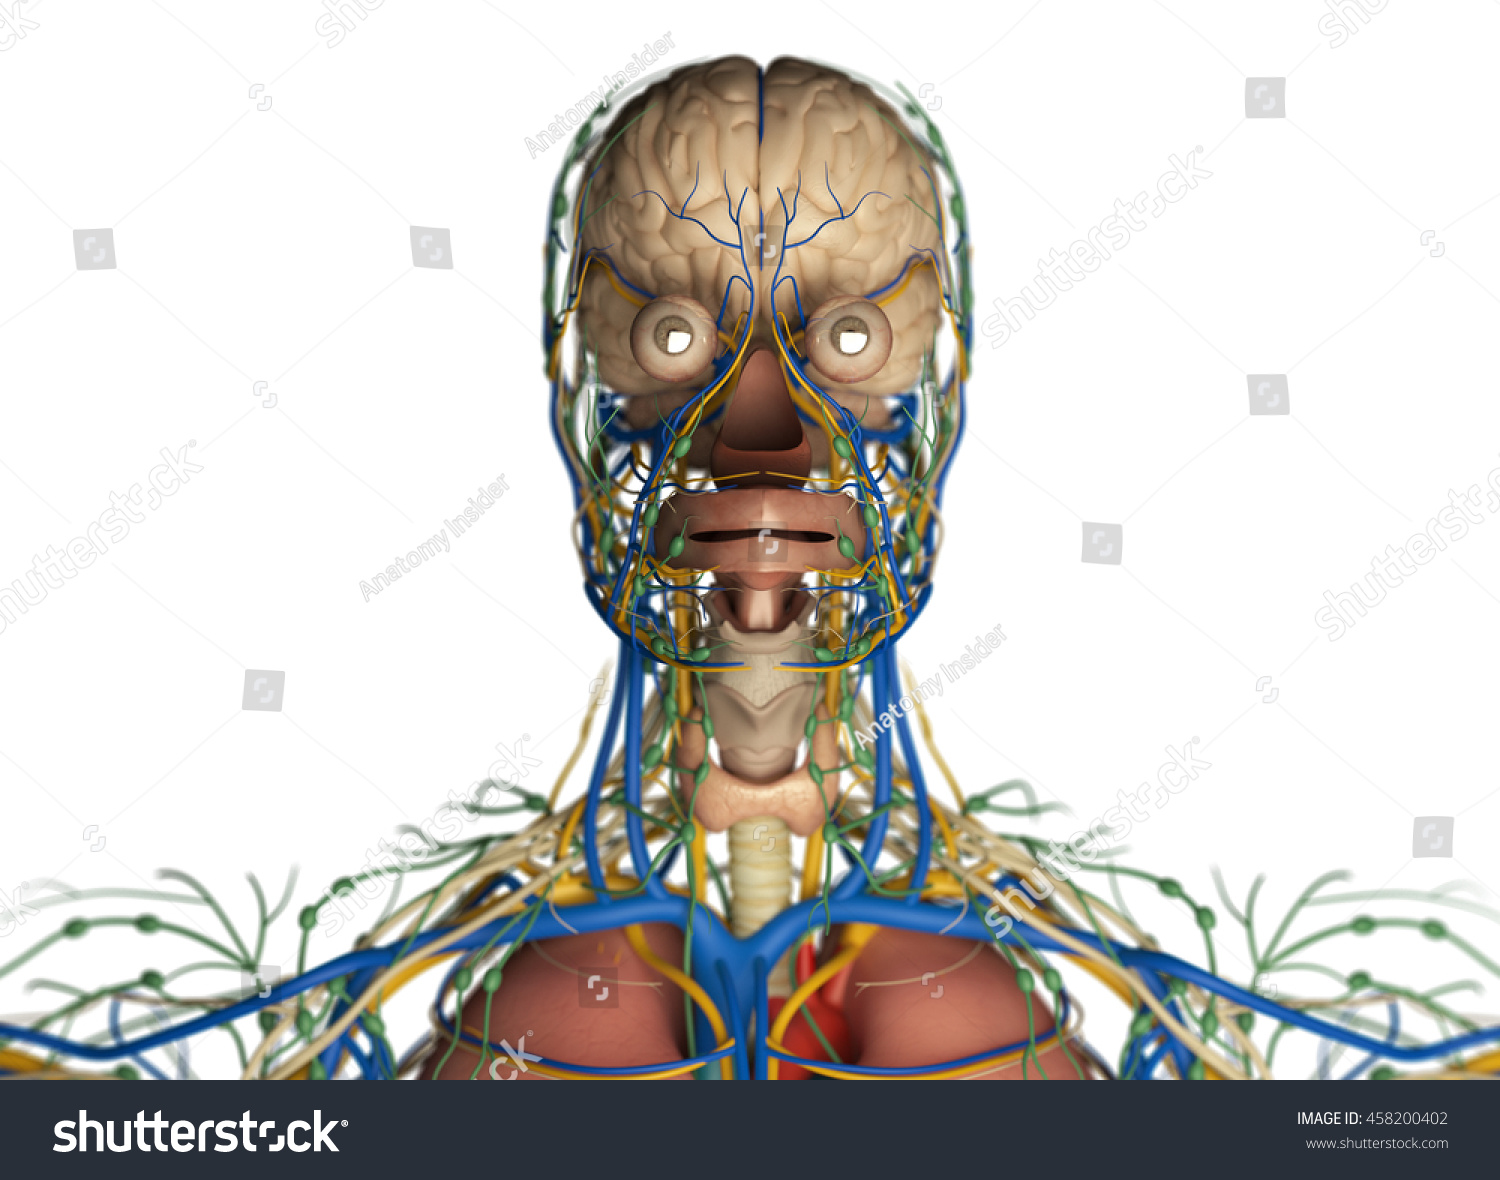 Brain Arteries Nerves Lymph Nodes Human Stock Illustration 458200402 ...